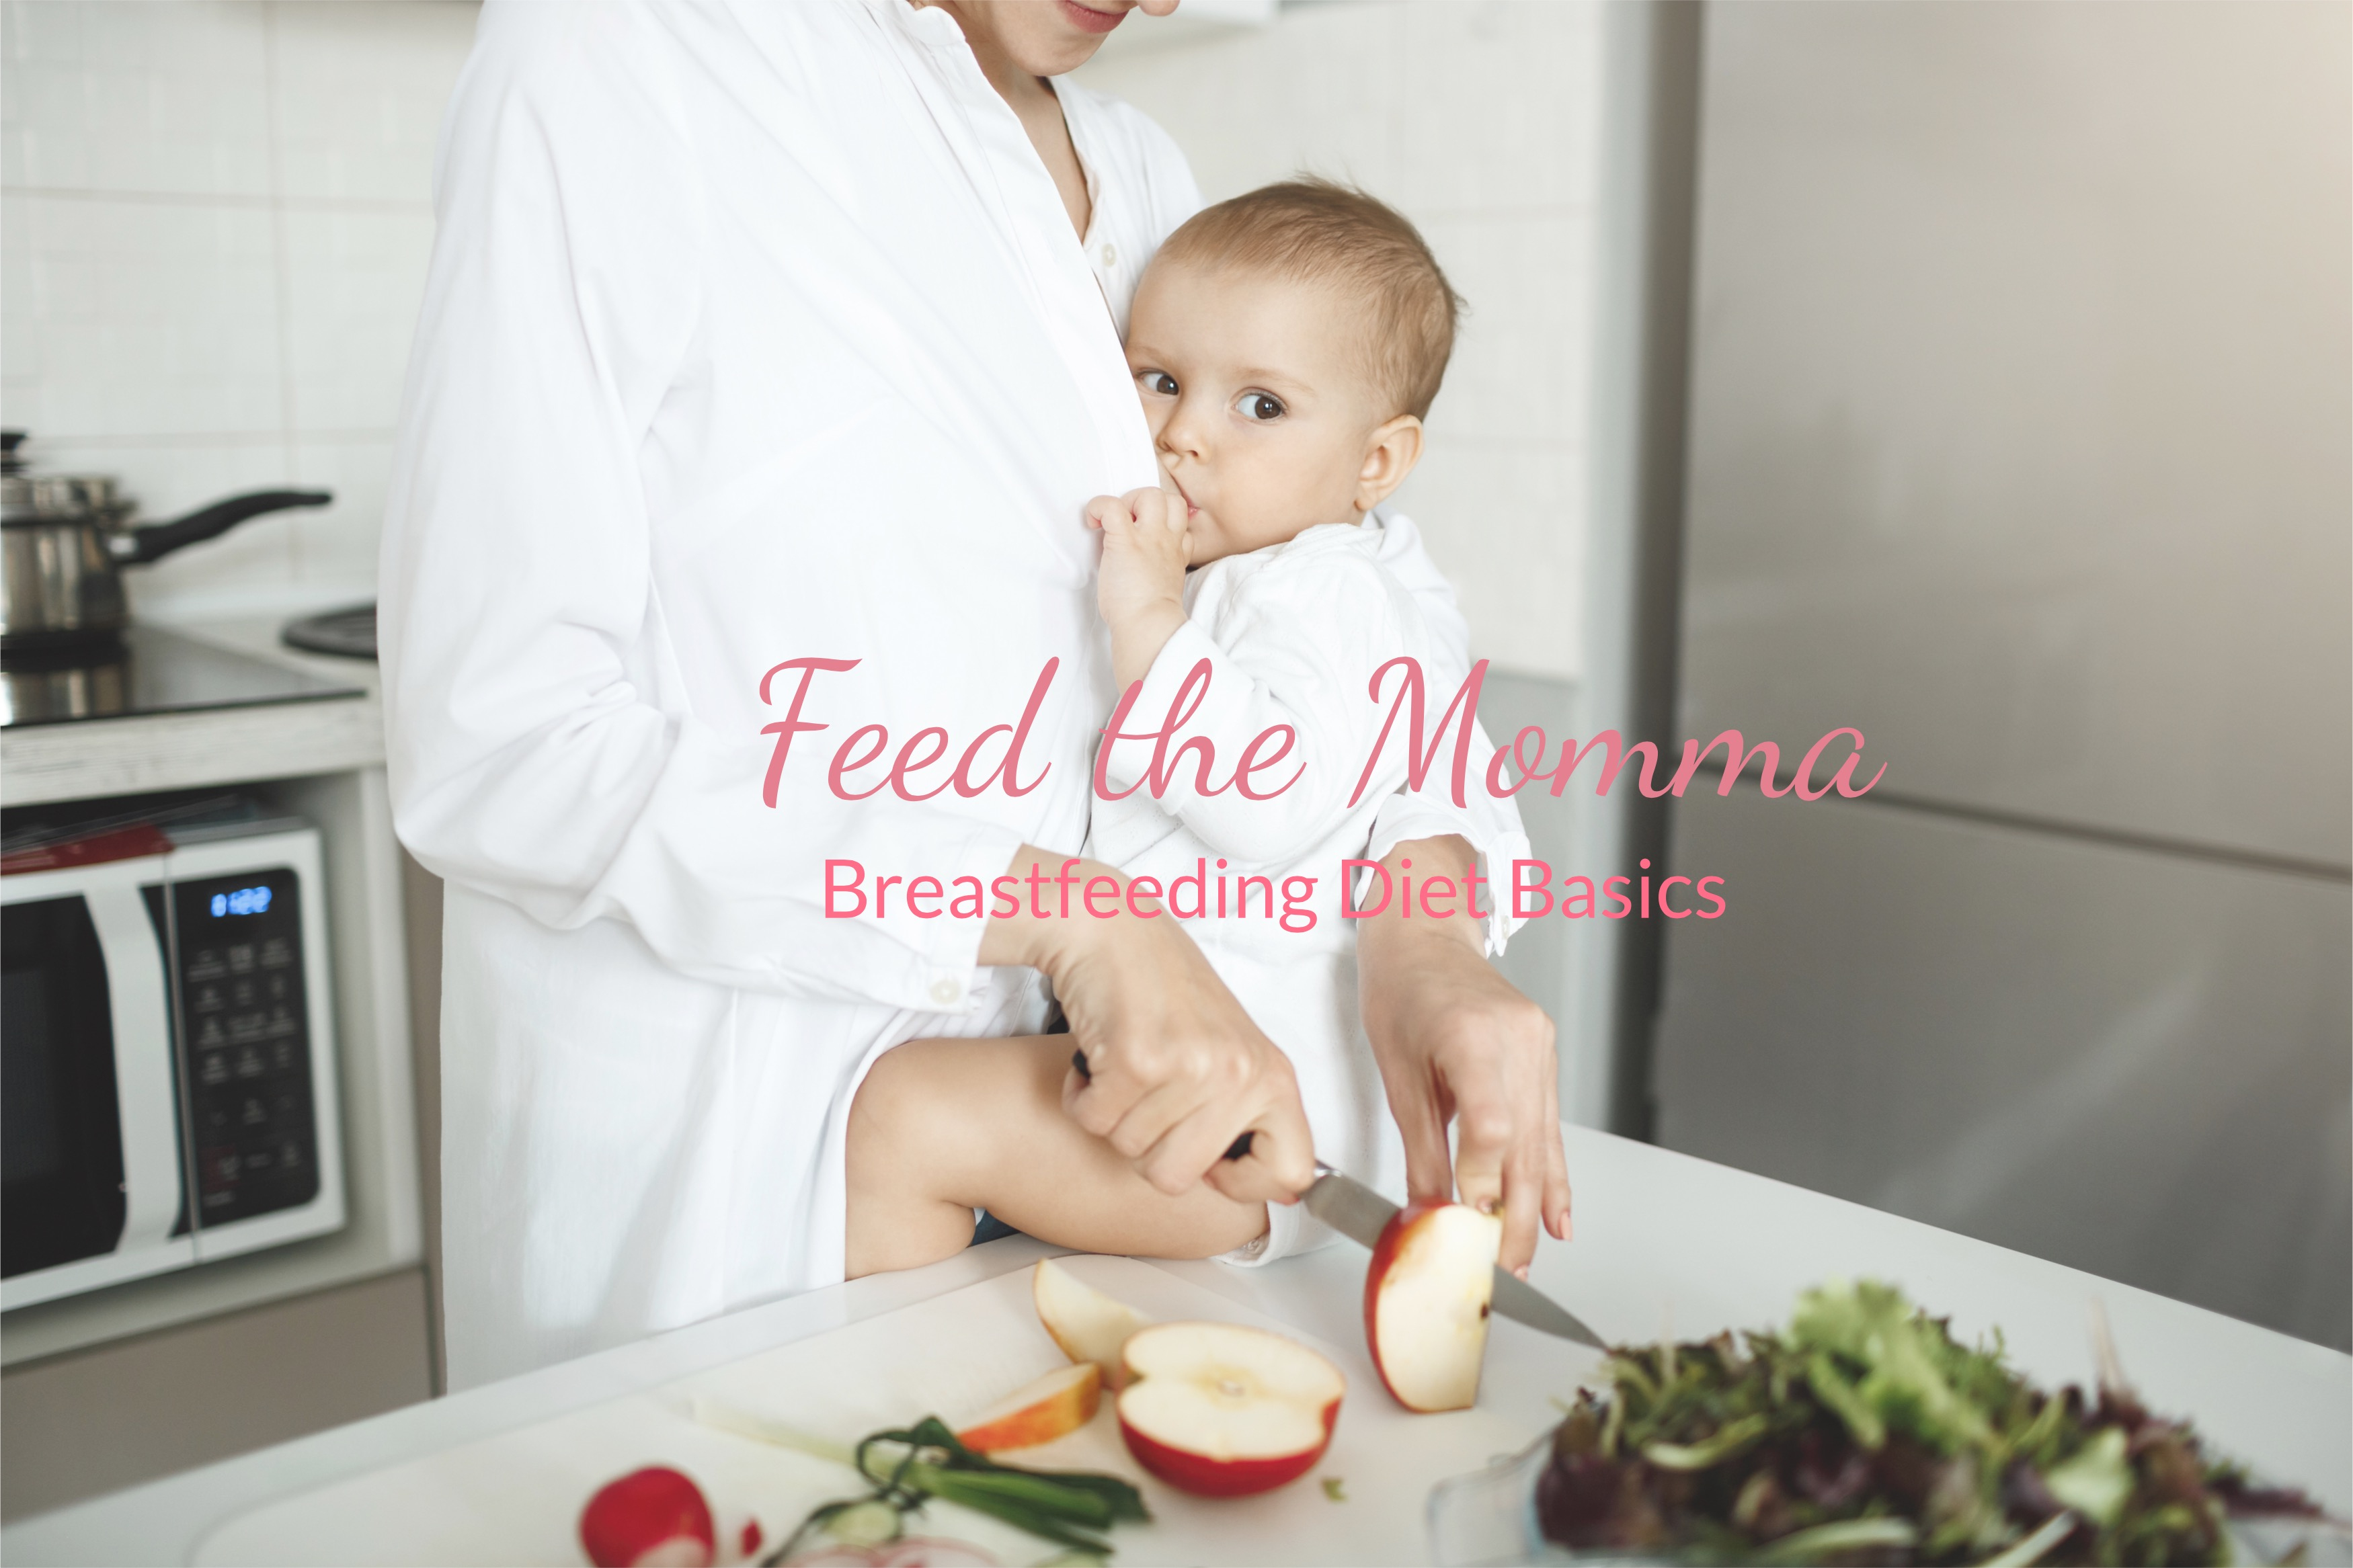 Nursing mother: food, allowed and prohibited foods 30